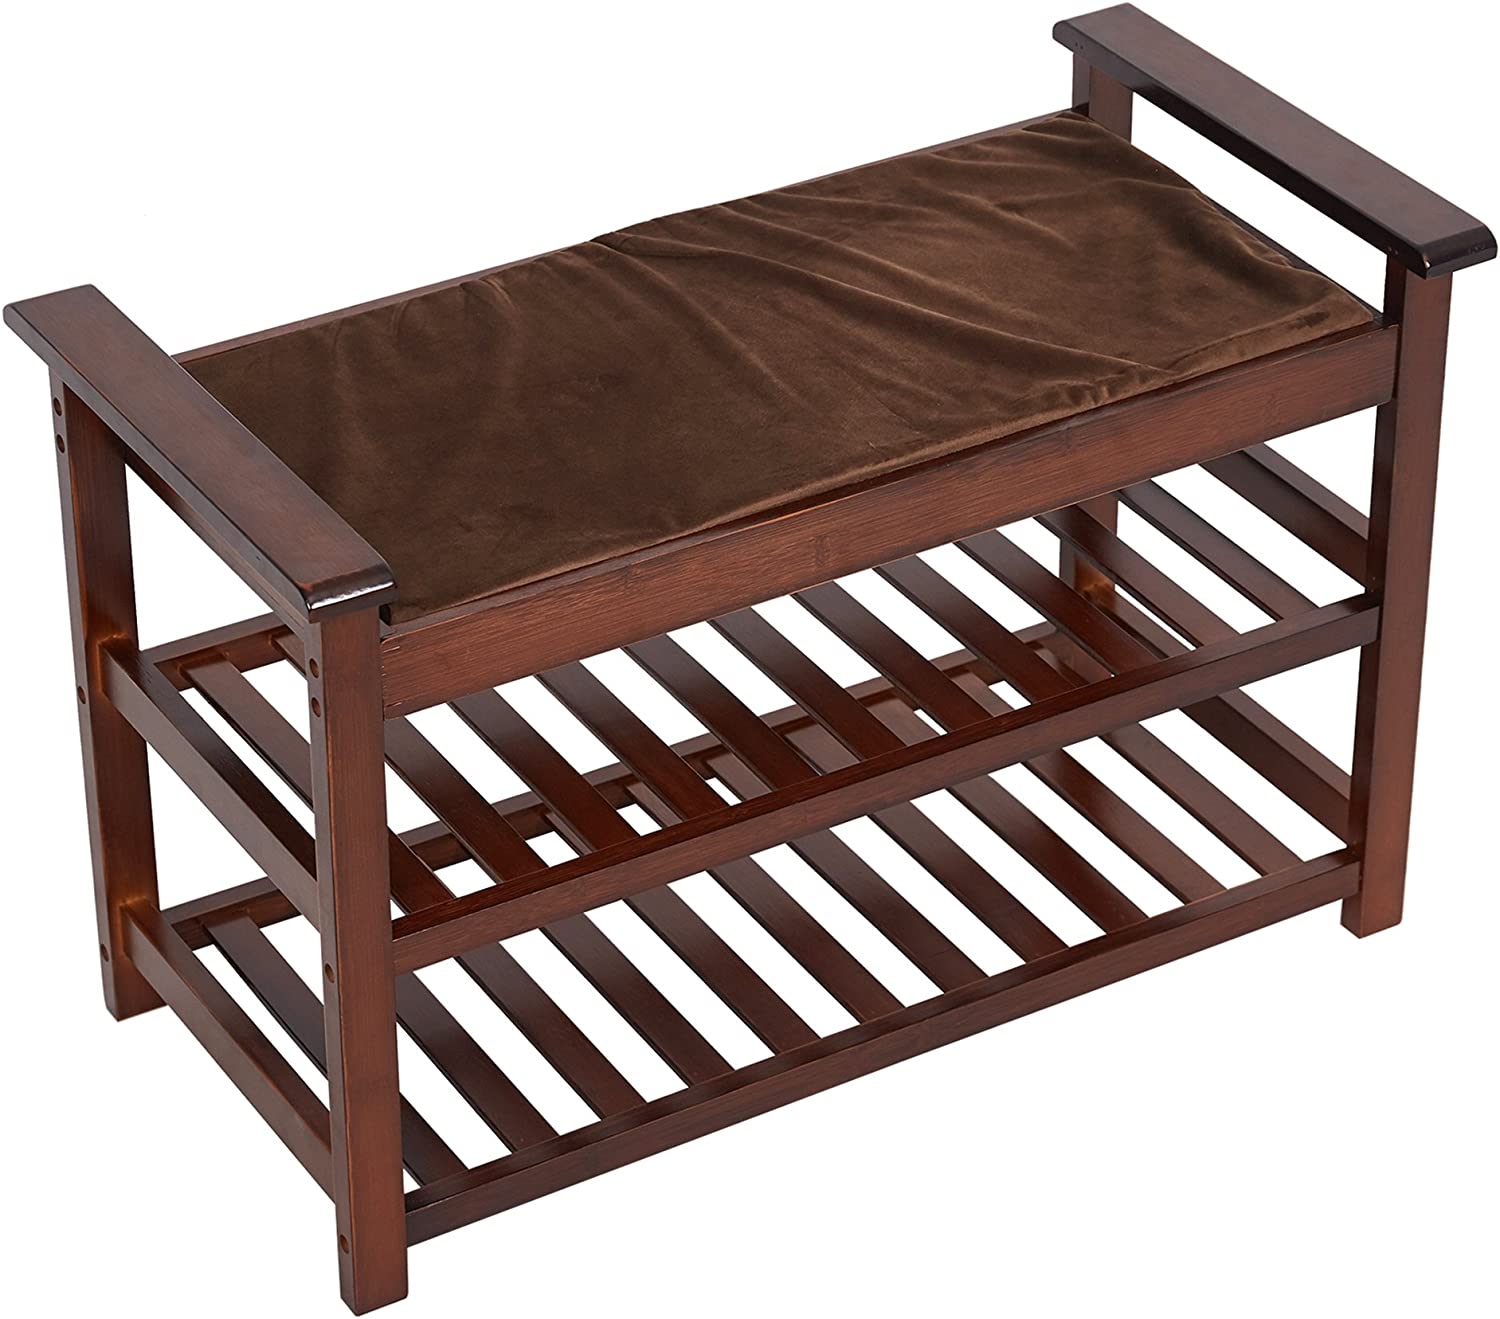 2-Tier Lowest price challenge Wood Shoe Max 54% OFF Rack Bench Storage Seat with Cushion Stur